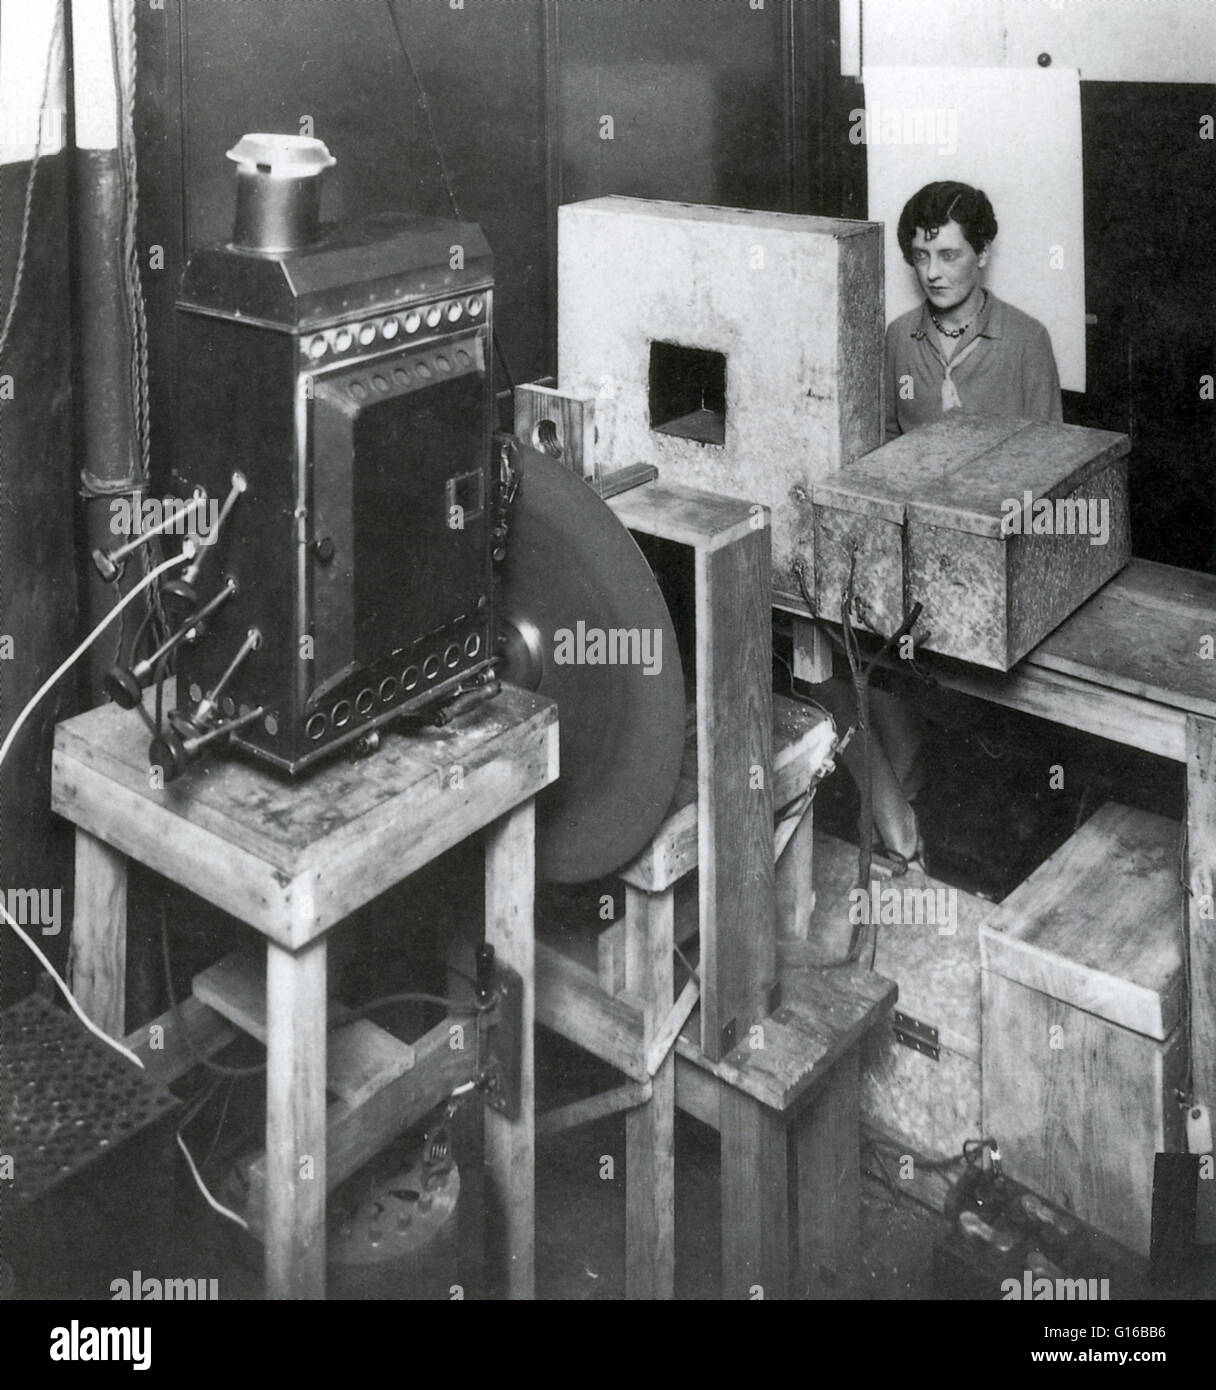 Early Television Experiment At The General Electric Co